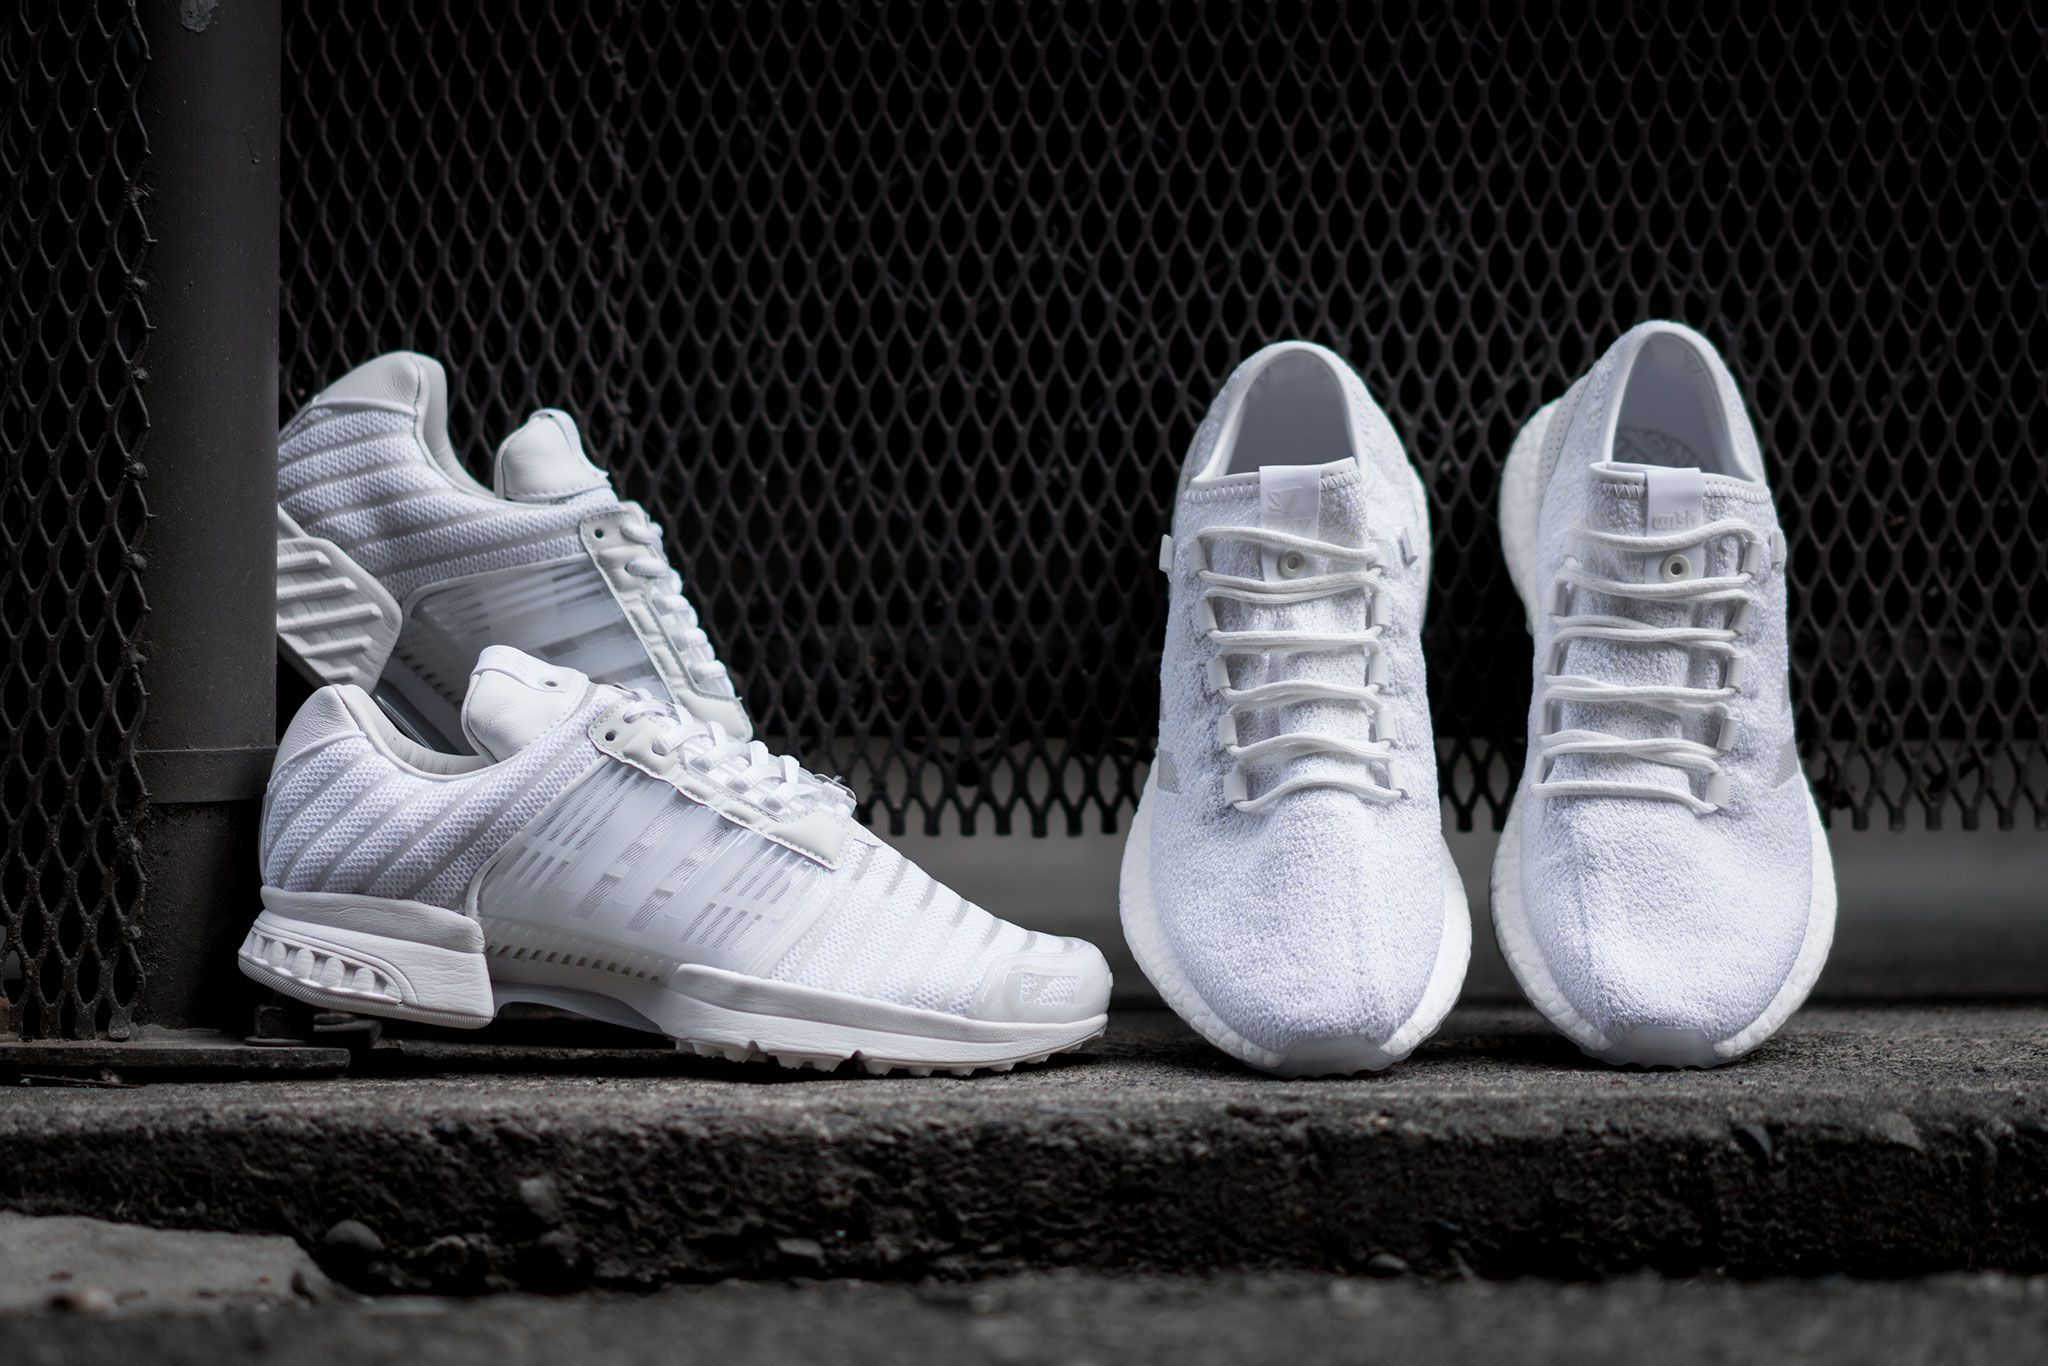 df1be713d adidas Consortium x Sneakerboy x Wish Pack